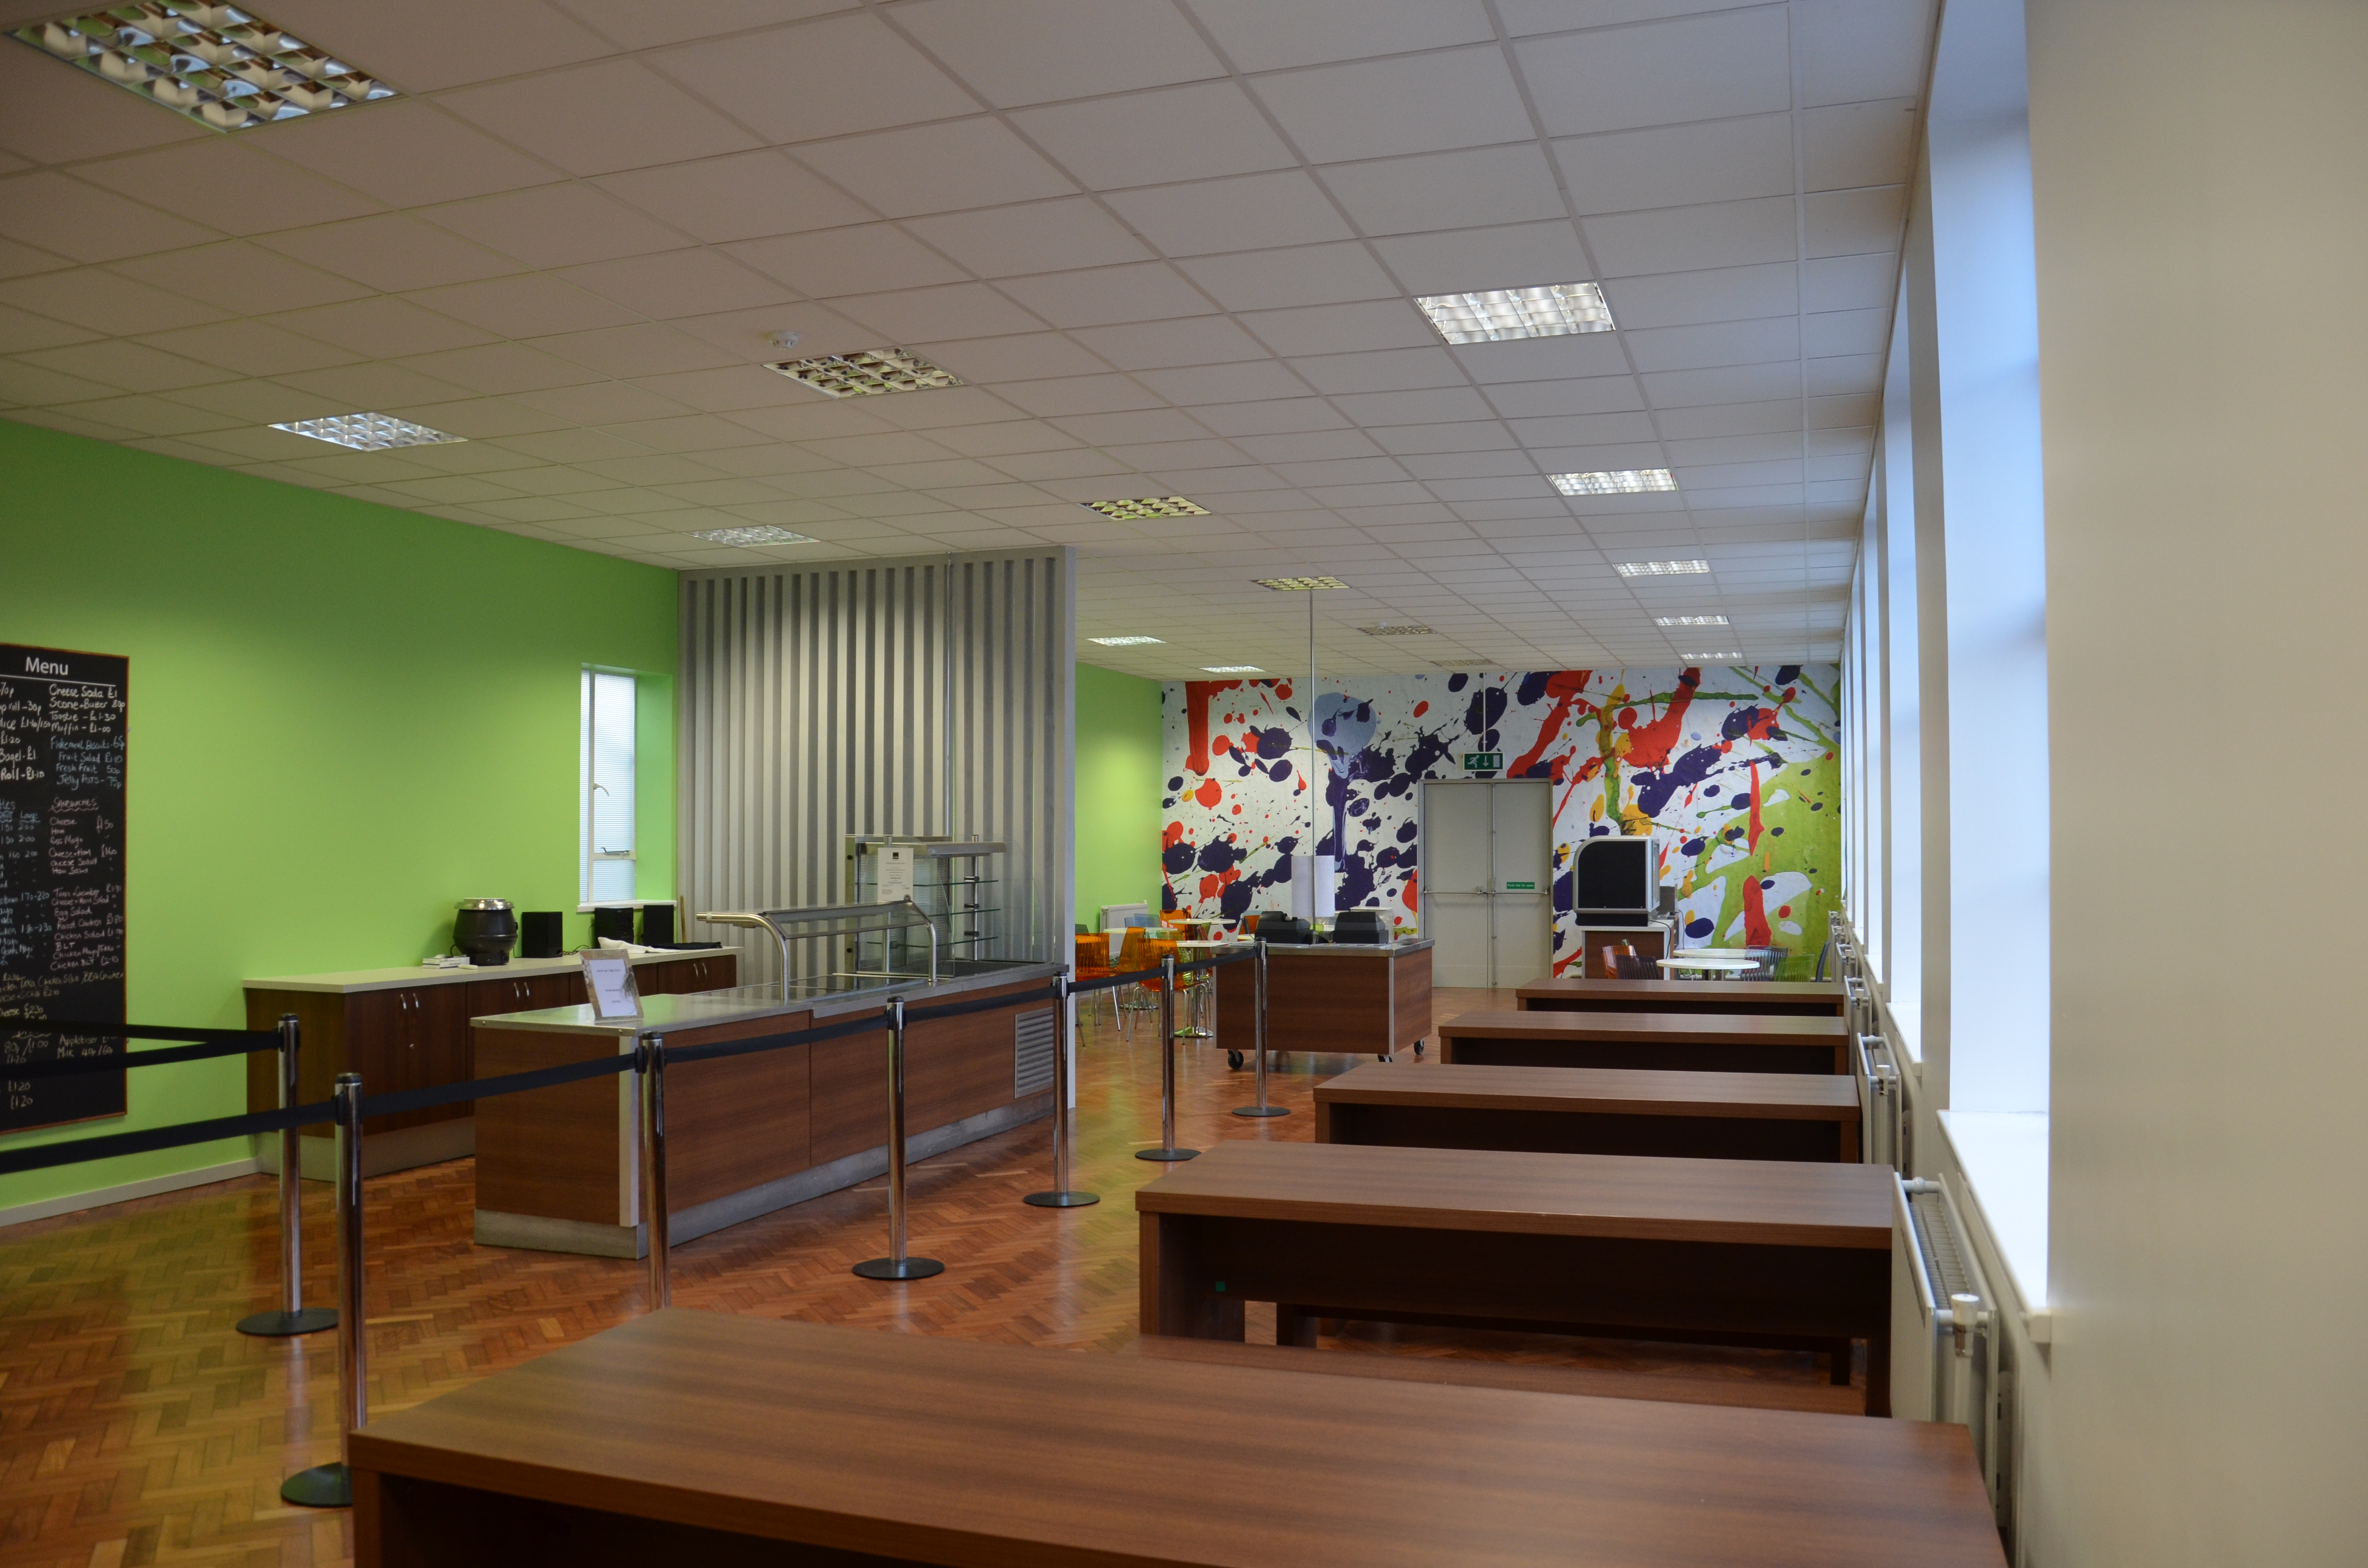 Our Services Included Interior Design Colour Schemes And Finishes